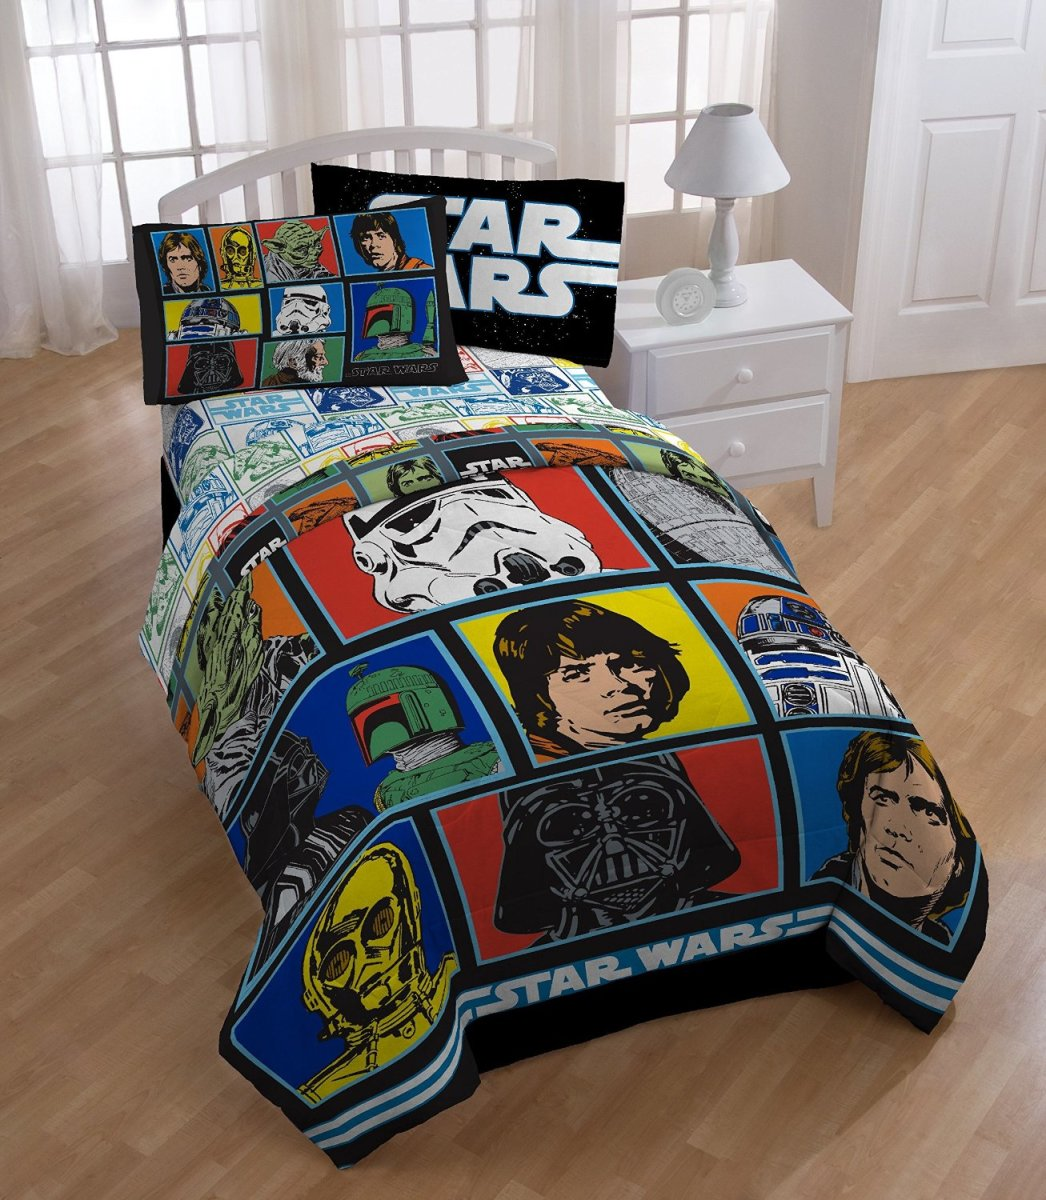 Star Wars Bedroom: How To Decorate A Star Wars Themed Bedroom